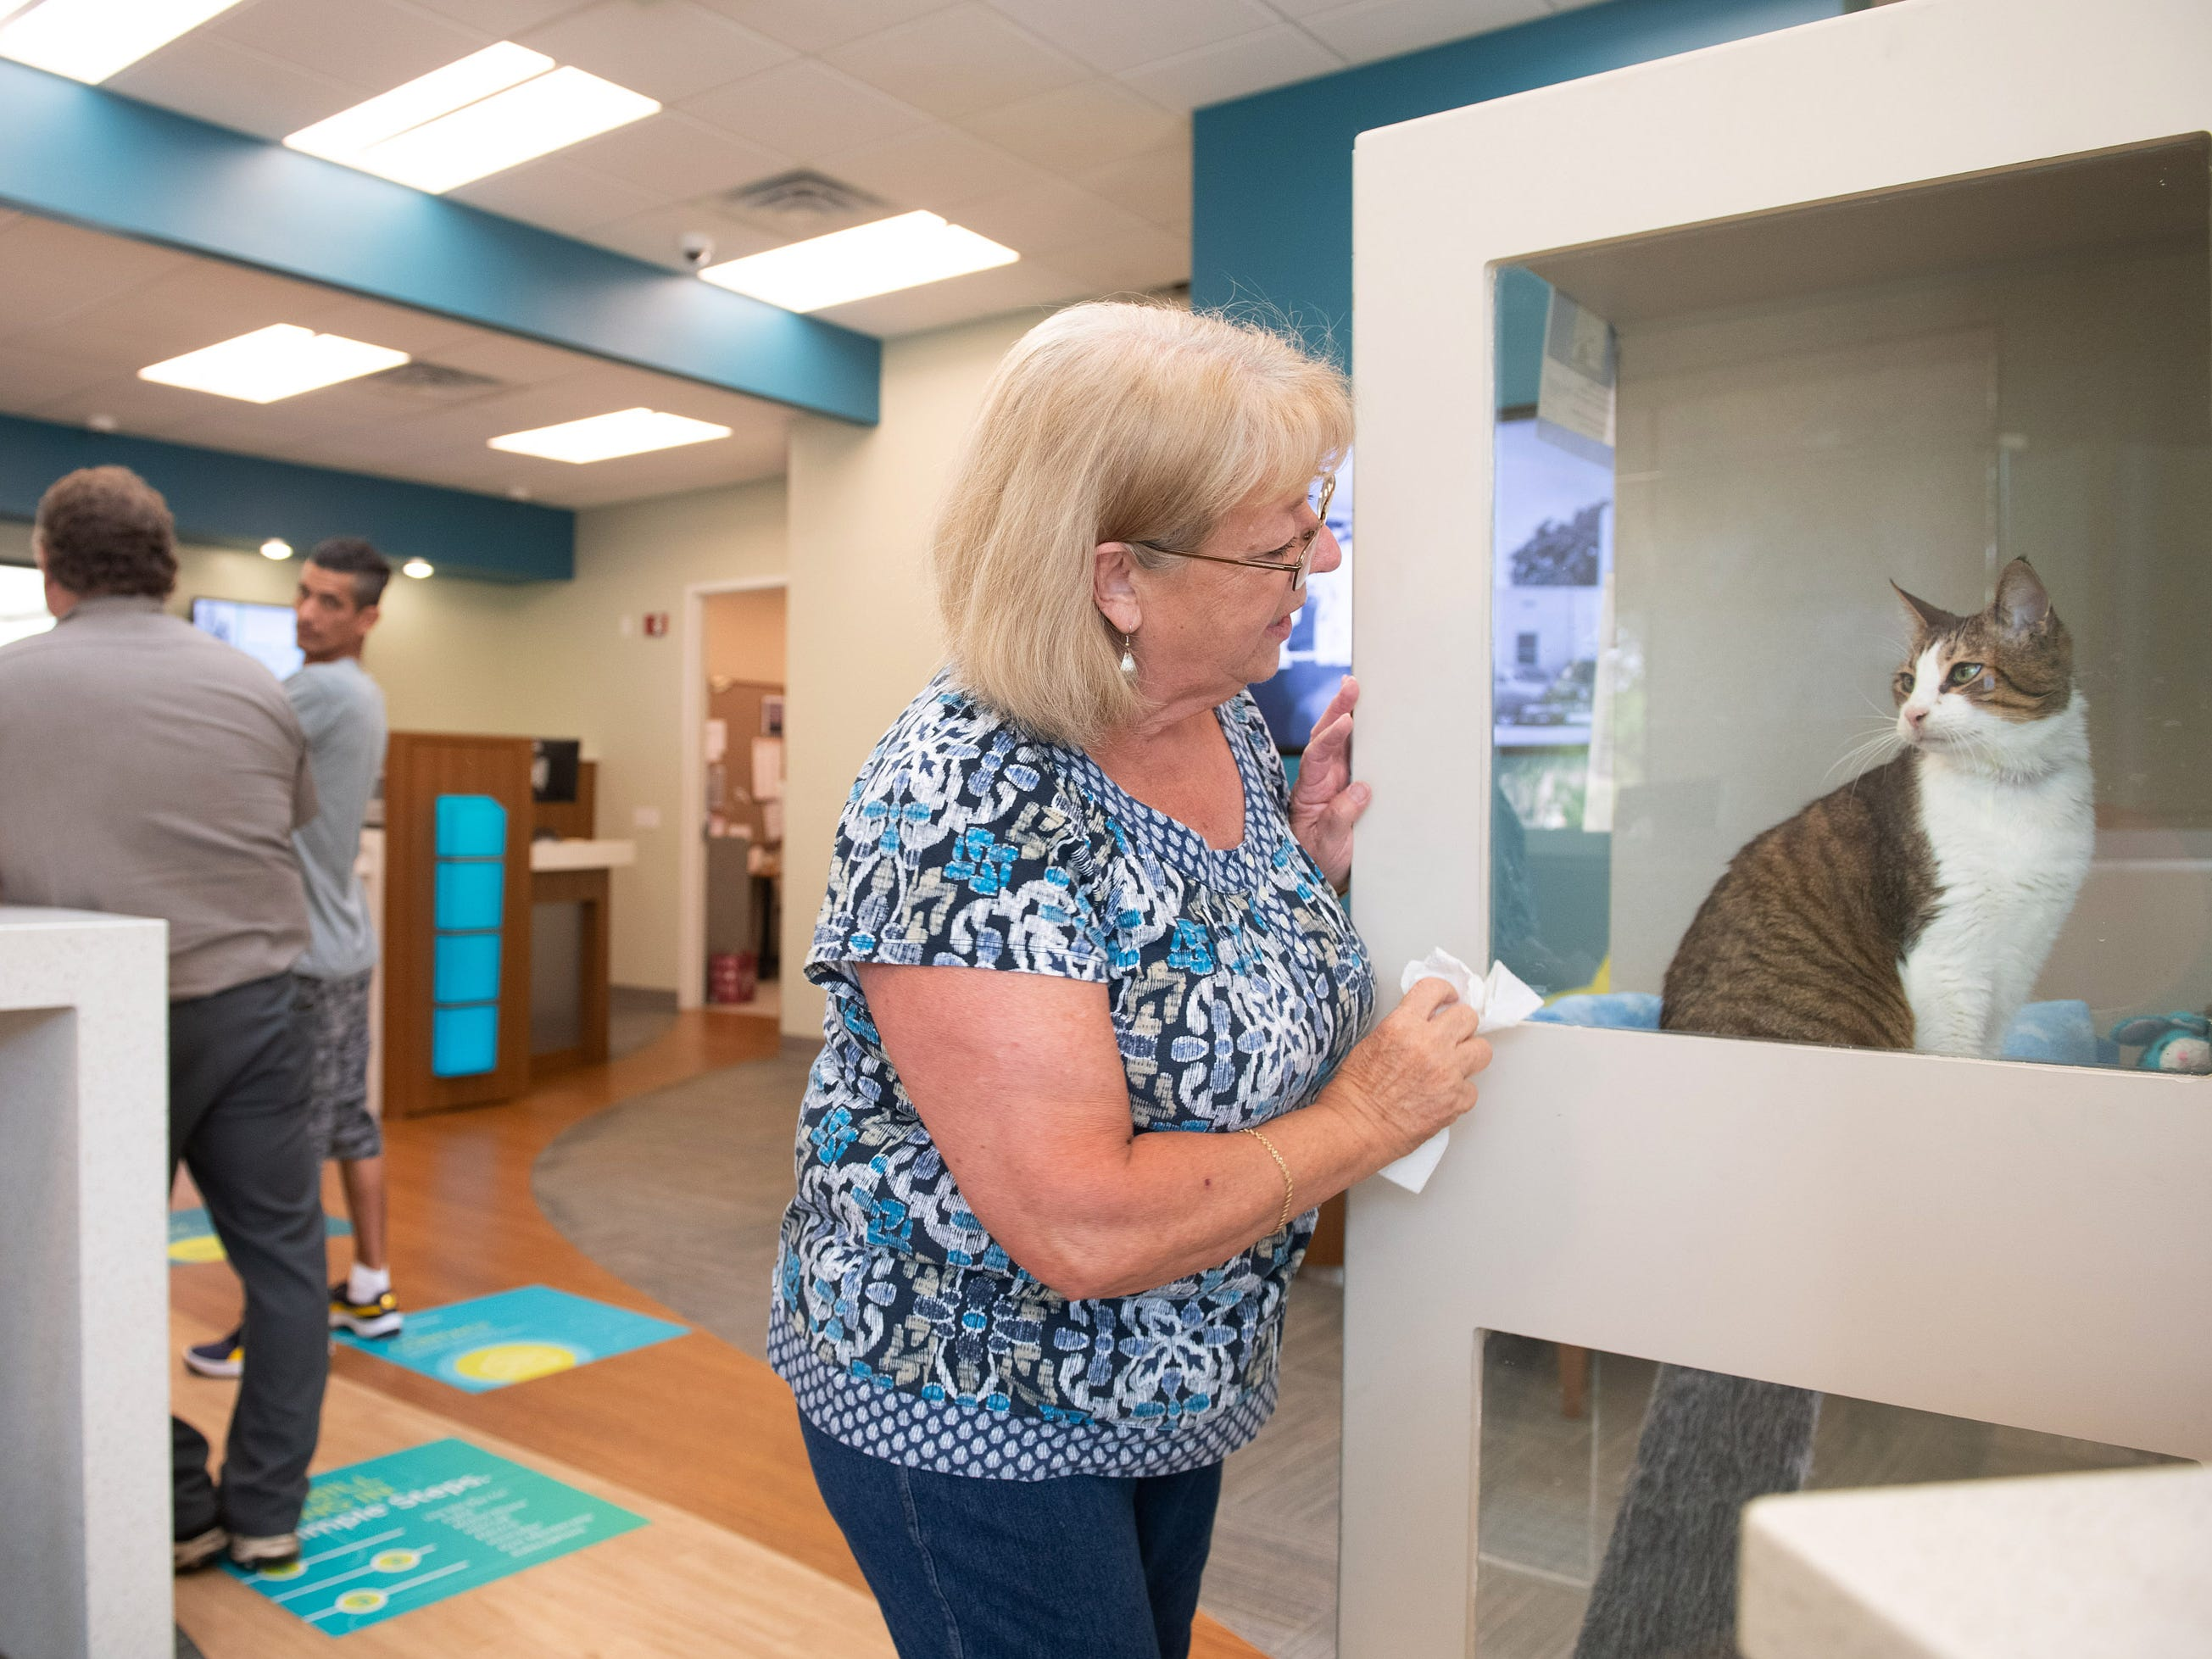 Barbara Herring, a volunteer with the Humane Society of Vero Beach and Indian River County, cleans the kitty condo windows that houses Spork, a four-year-old male cat that is up for adoption, at the Seacoast Bank at 6030 20th Street, on Wednesday, May 8, 2019, in Vero Beach. The shelter has partnered with Seacoast Bank to host a new adoptable cat every week at the Seacoast Bank. Seacoast Bank received their first cat up for adoption from shelter in October and since then they have had 18 cats adopted from their location.